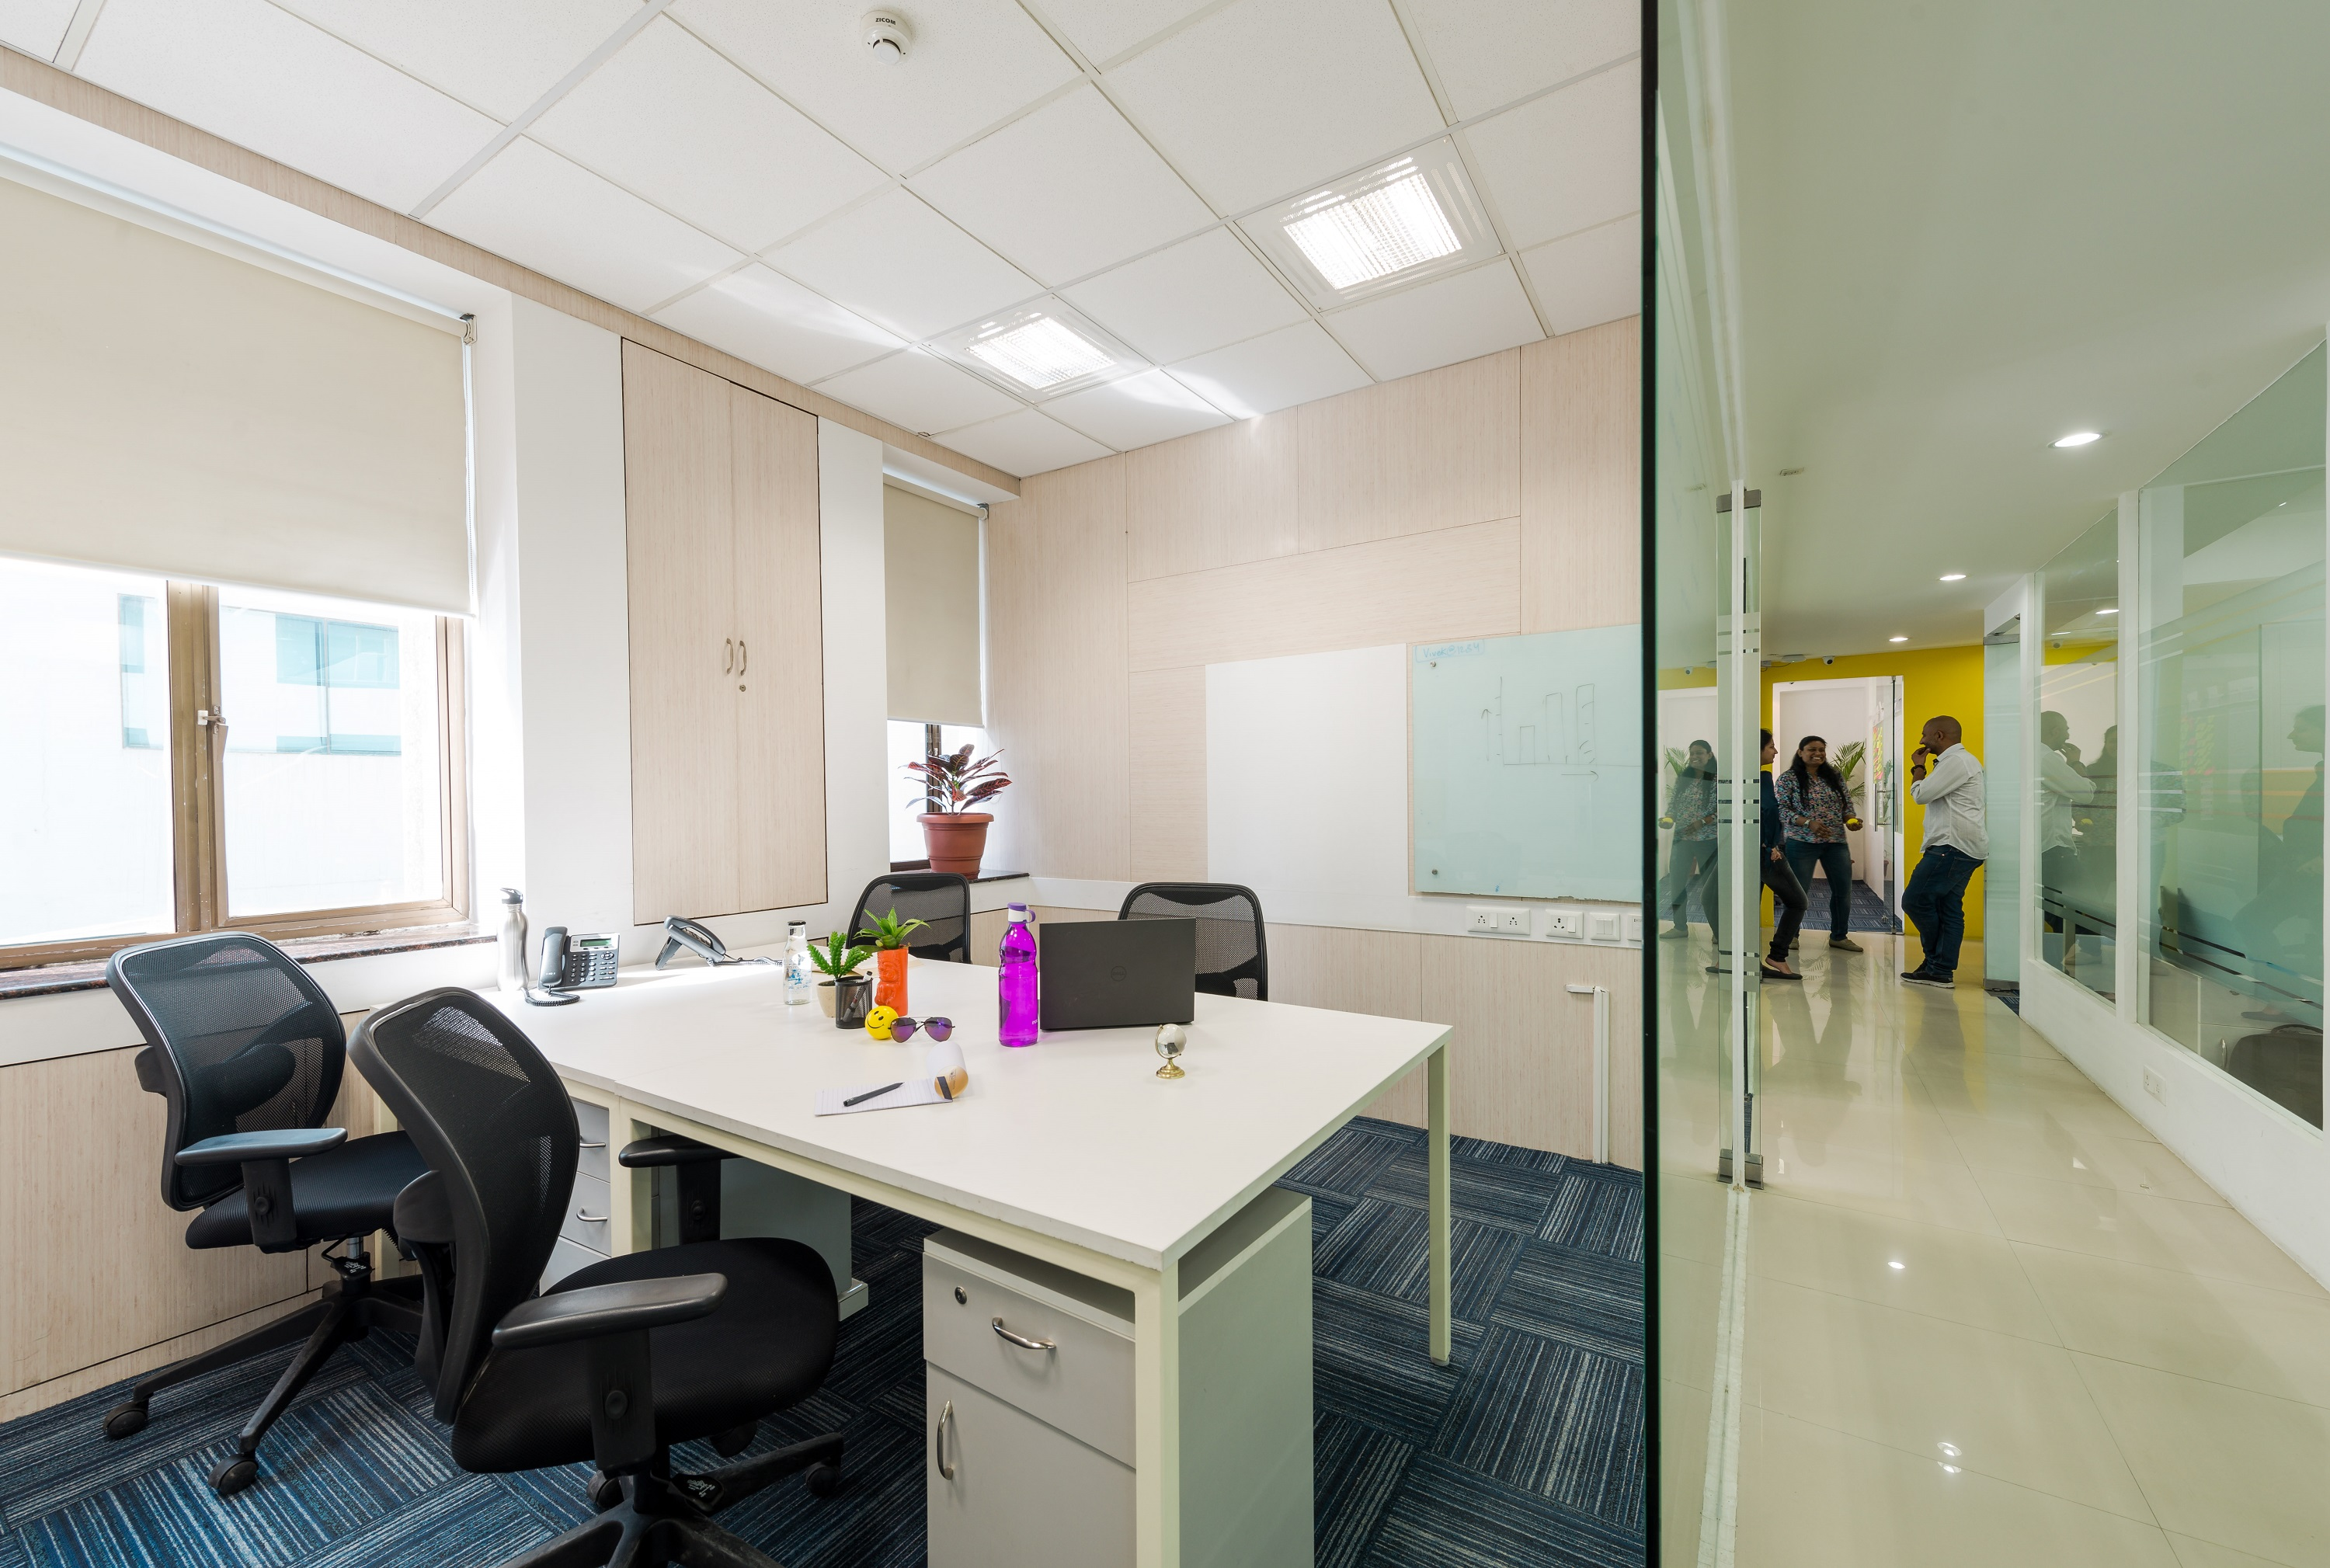 Shared office space for rent available at sector 44 near huda metro station gurgaon my desk hub - Shared office space for rent ...